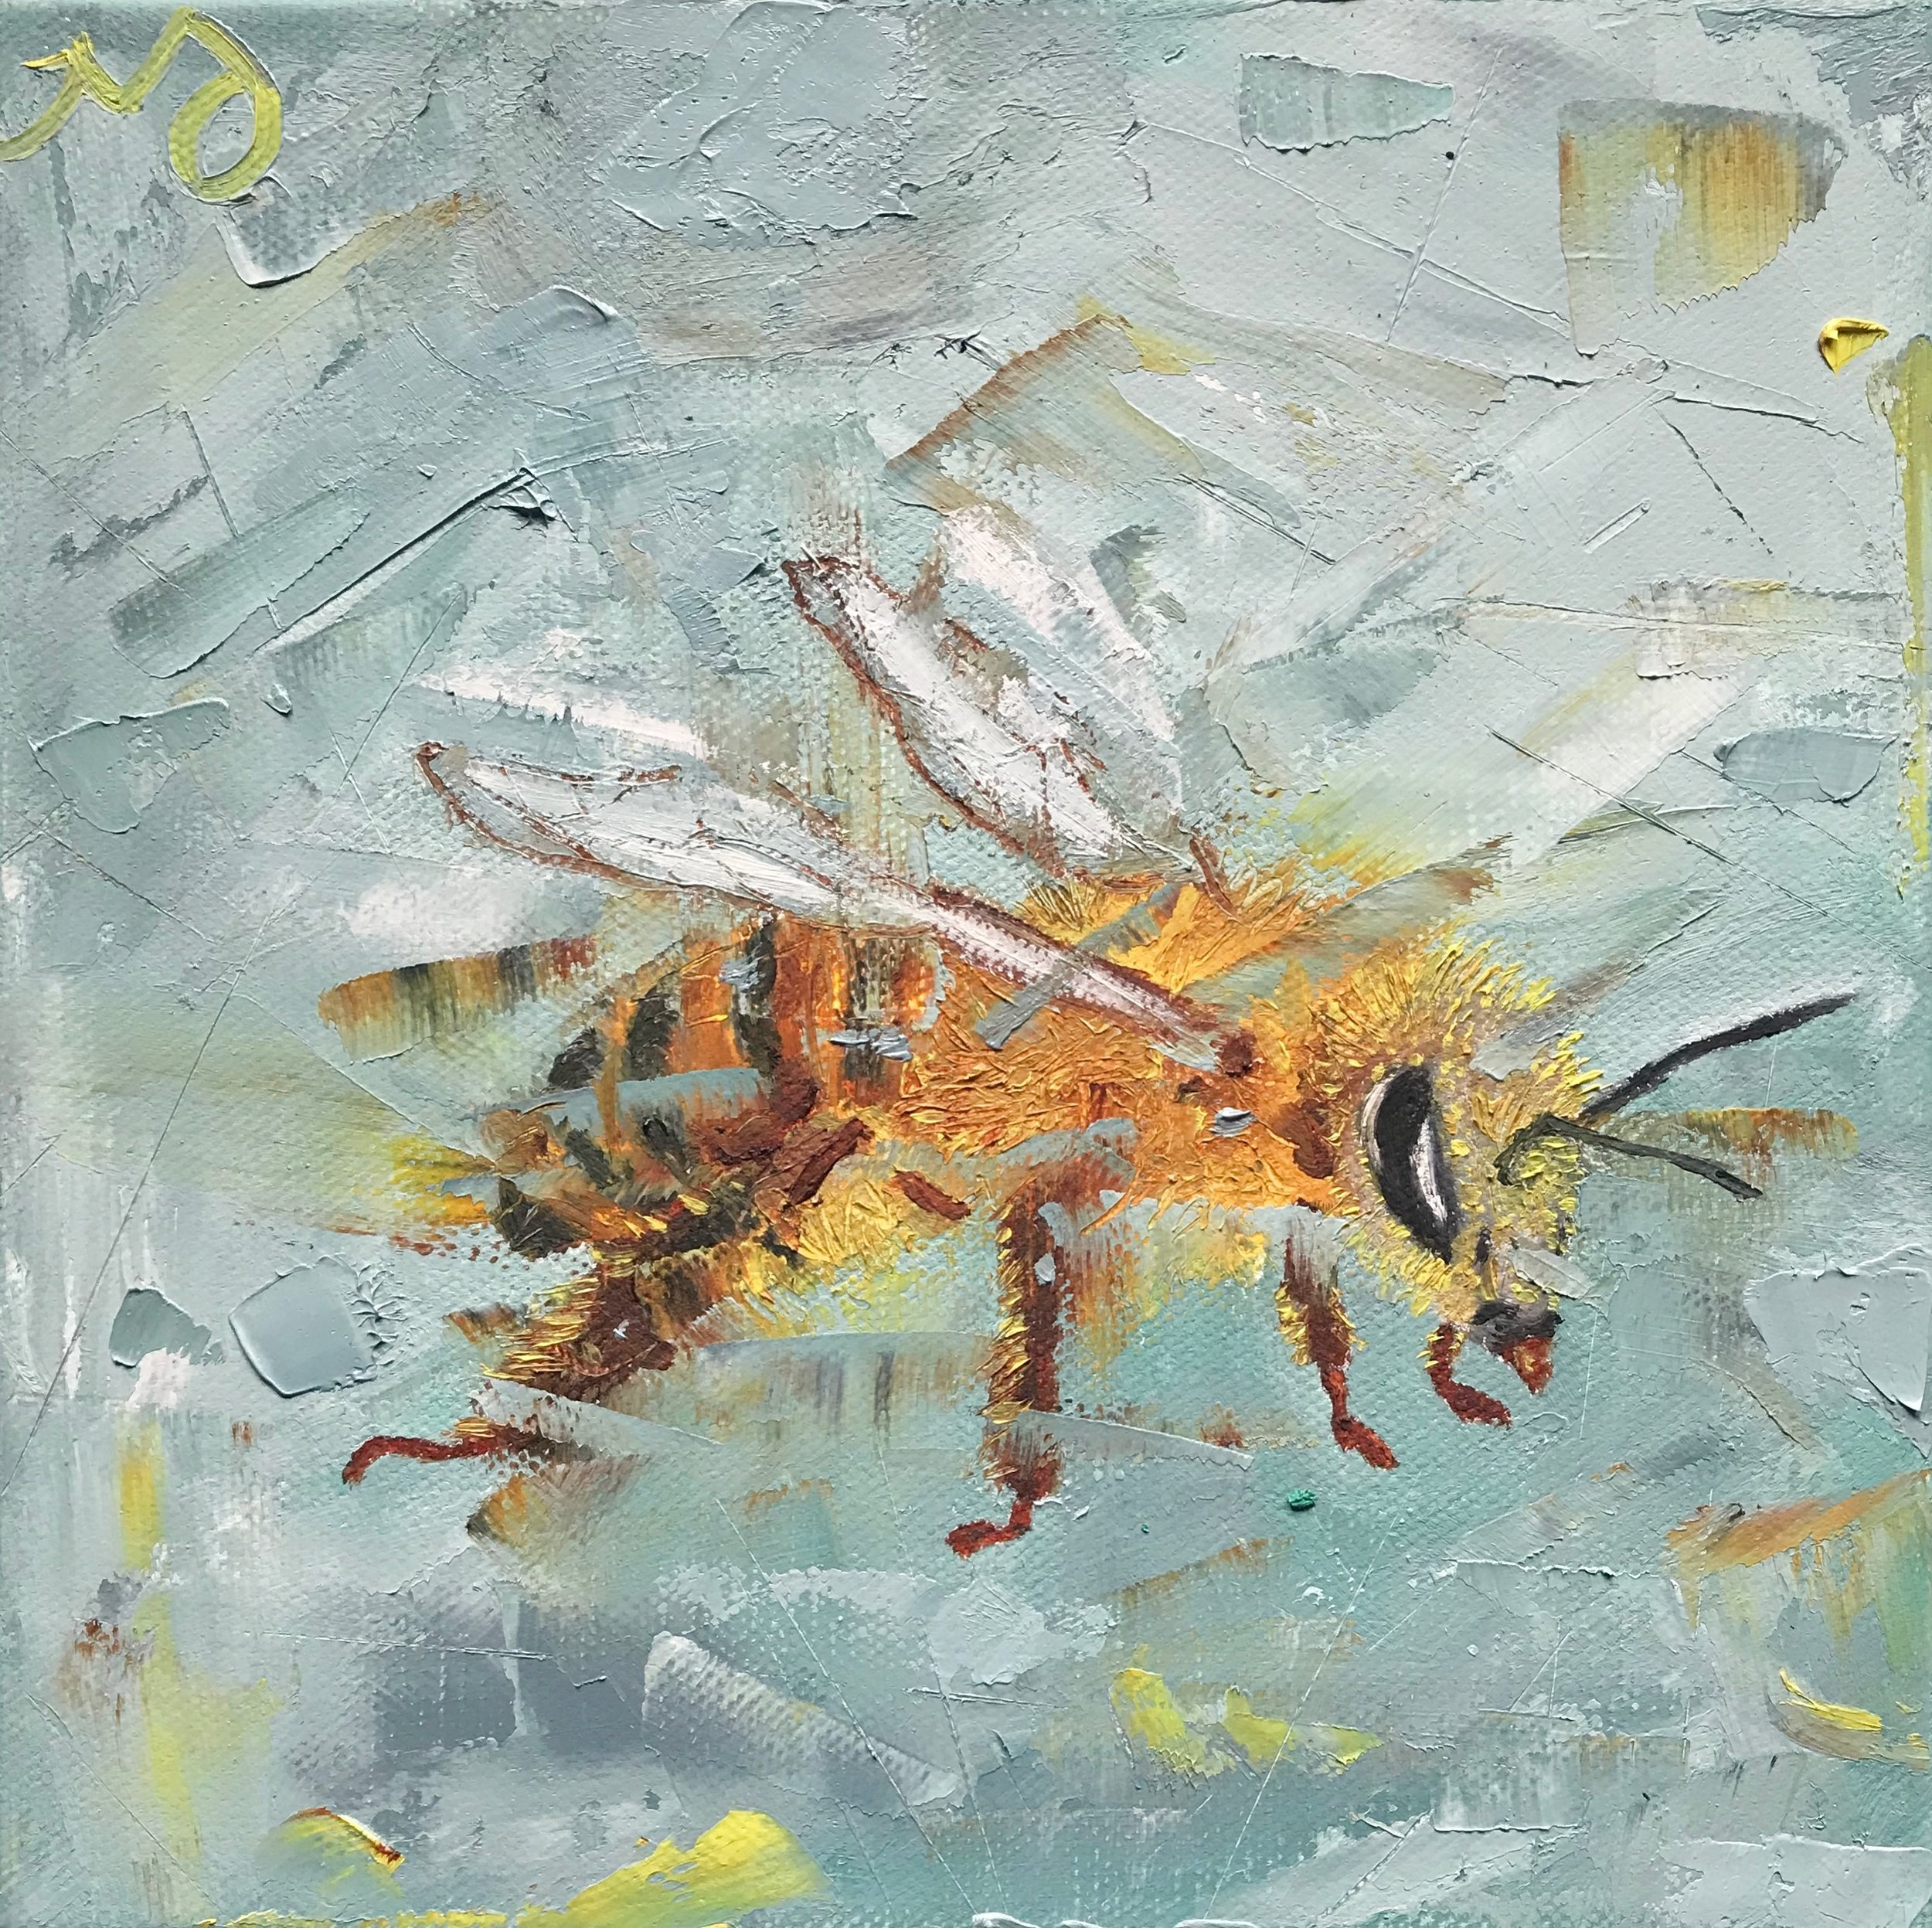 Honey Bee   8 x 8 x 1.5 inches   oil on canvas   SOLD